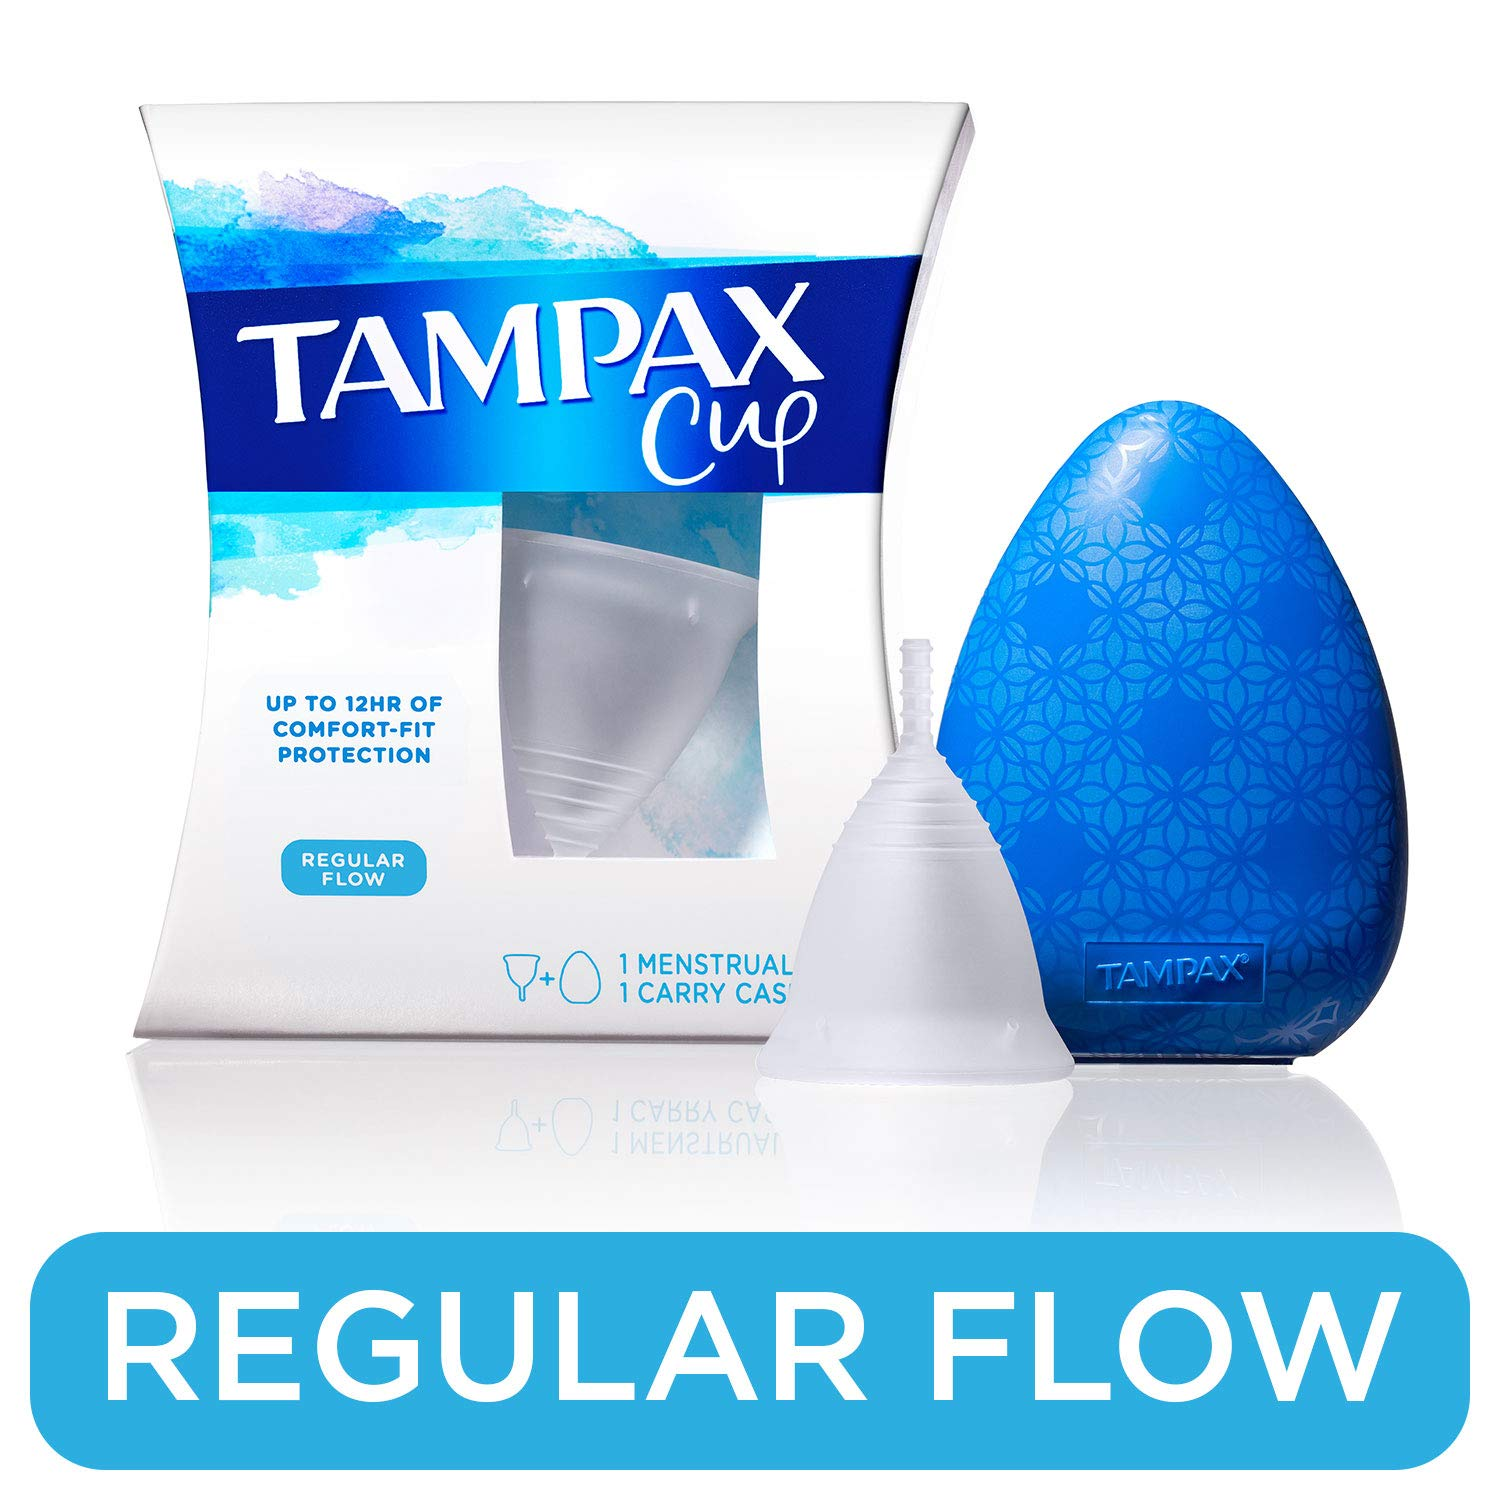 Tampax Menstrual Cup, Regular Flow, Tampon Alternative, Reusable, 12 Hours of Flexible Comfort-fit Protection with Free Always Thin Liners